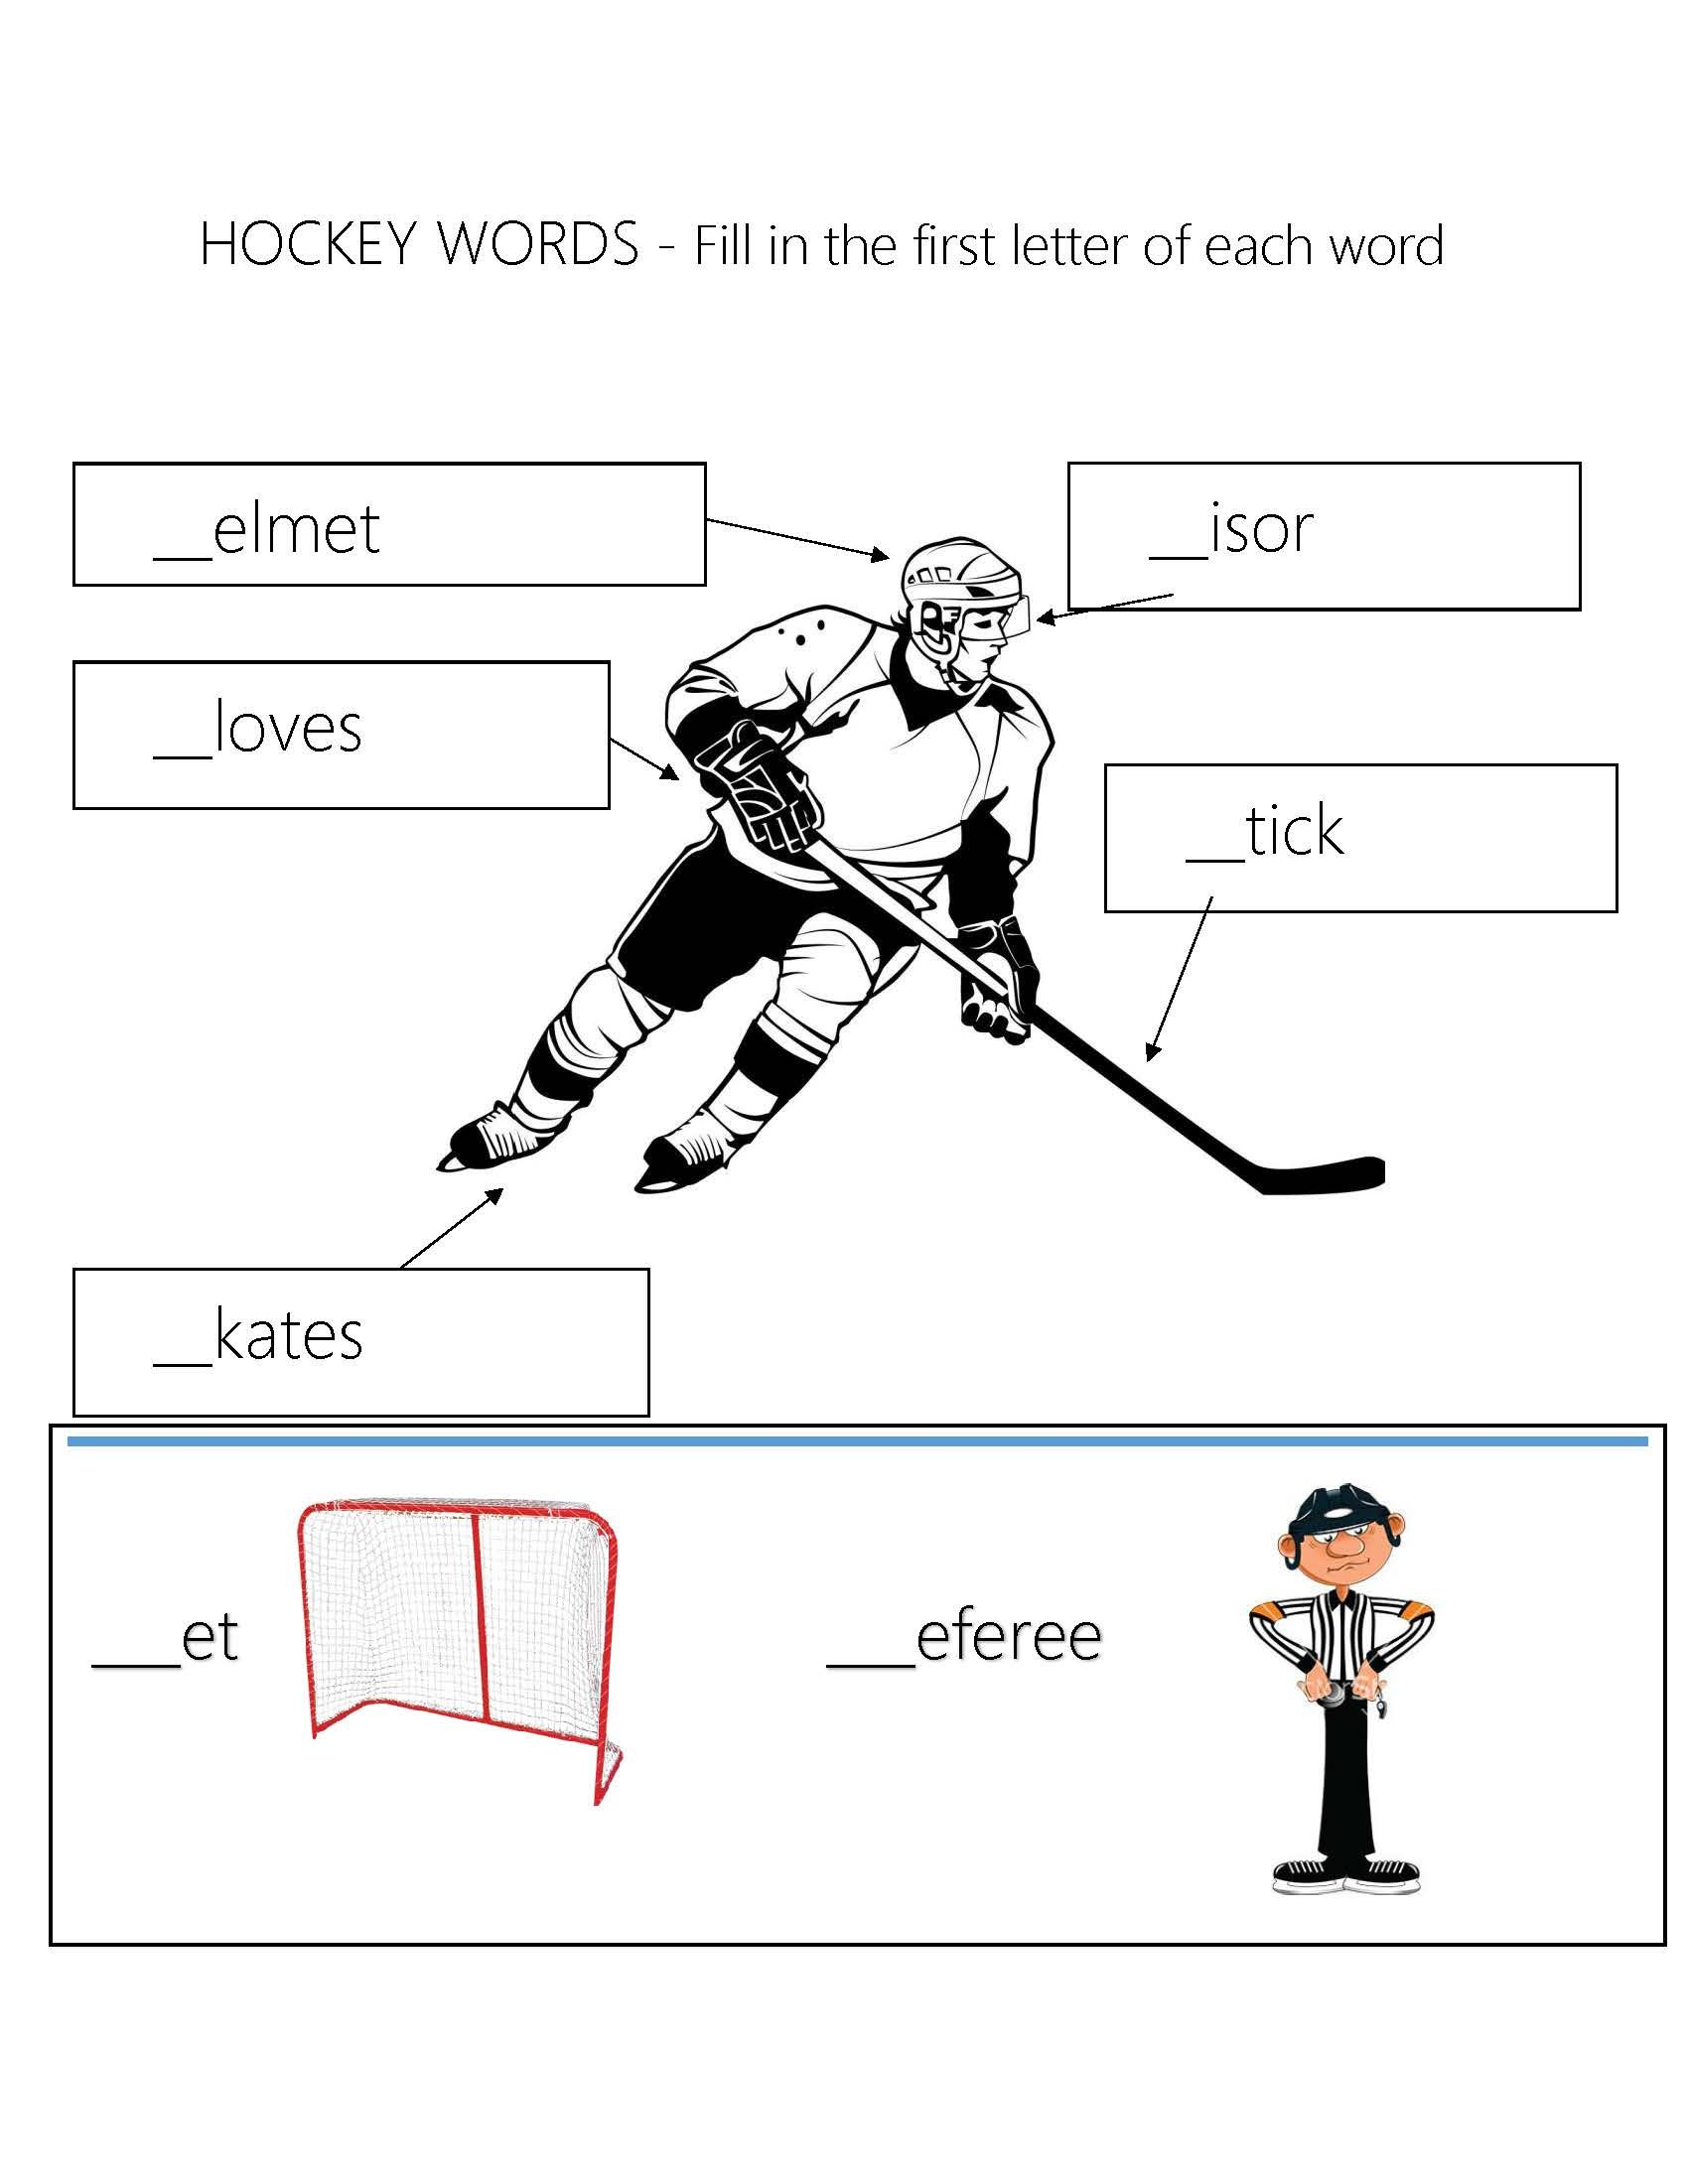 First Letter Fill In Worksheet Hockey Themed Spelling For